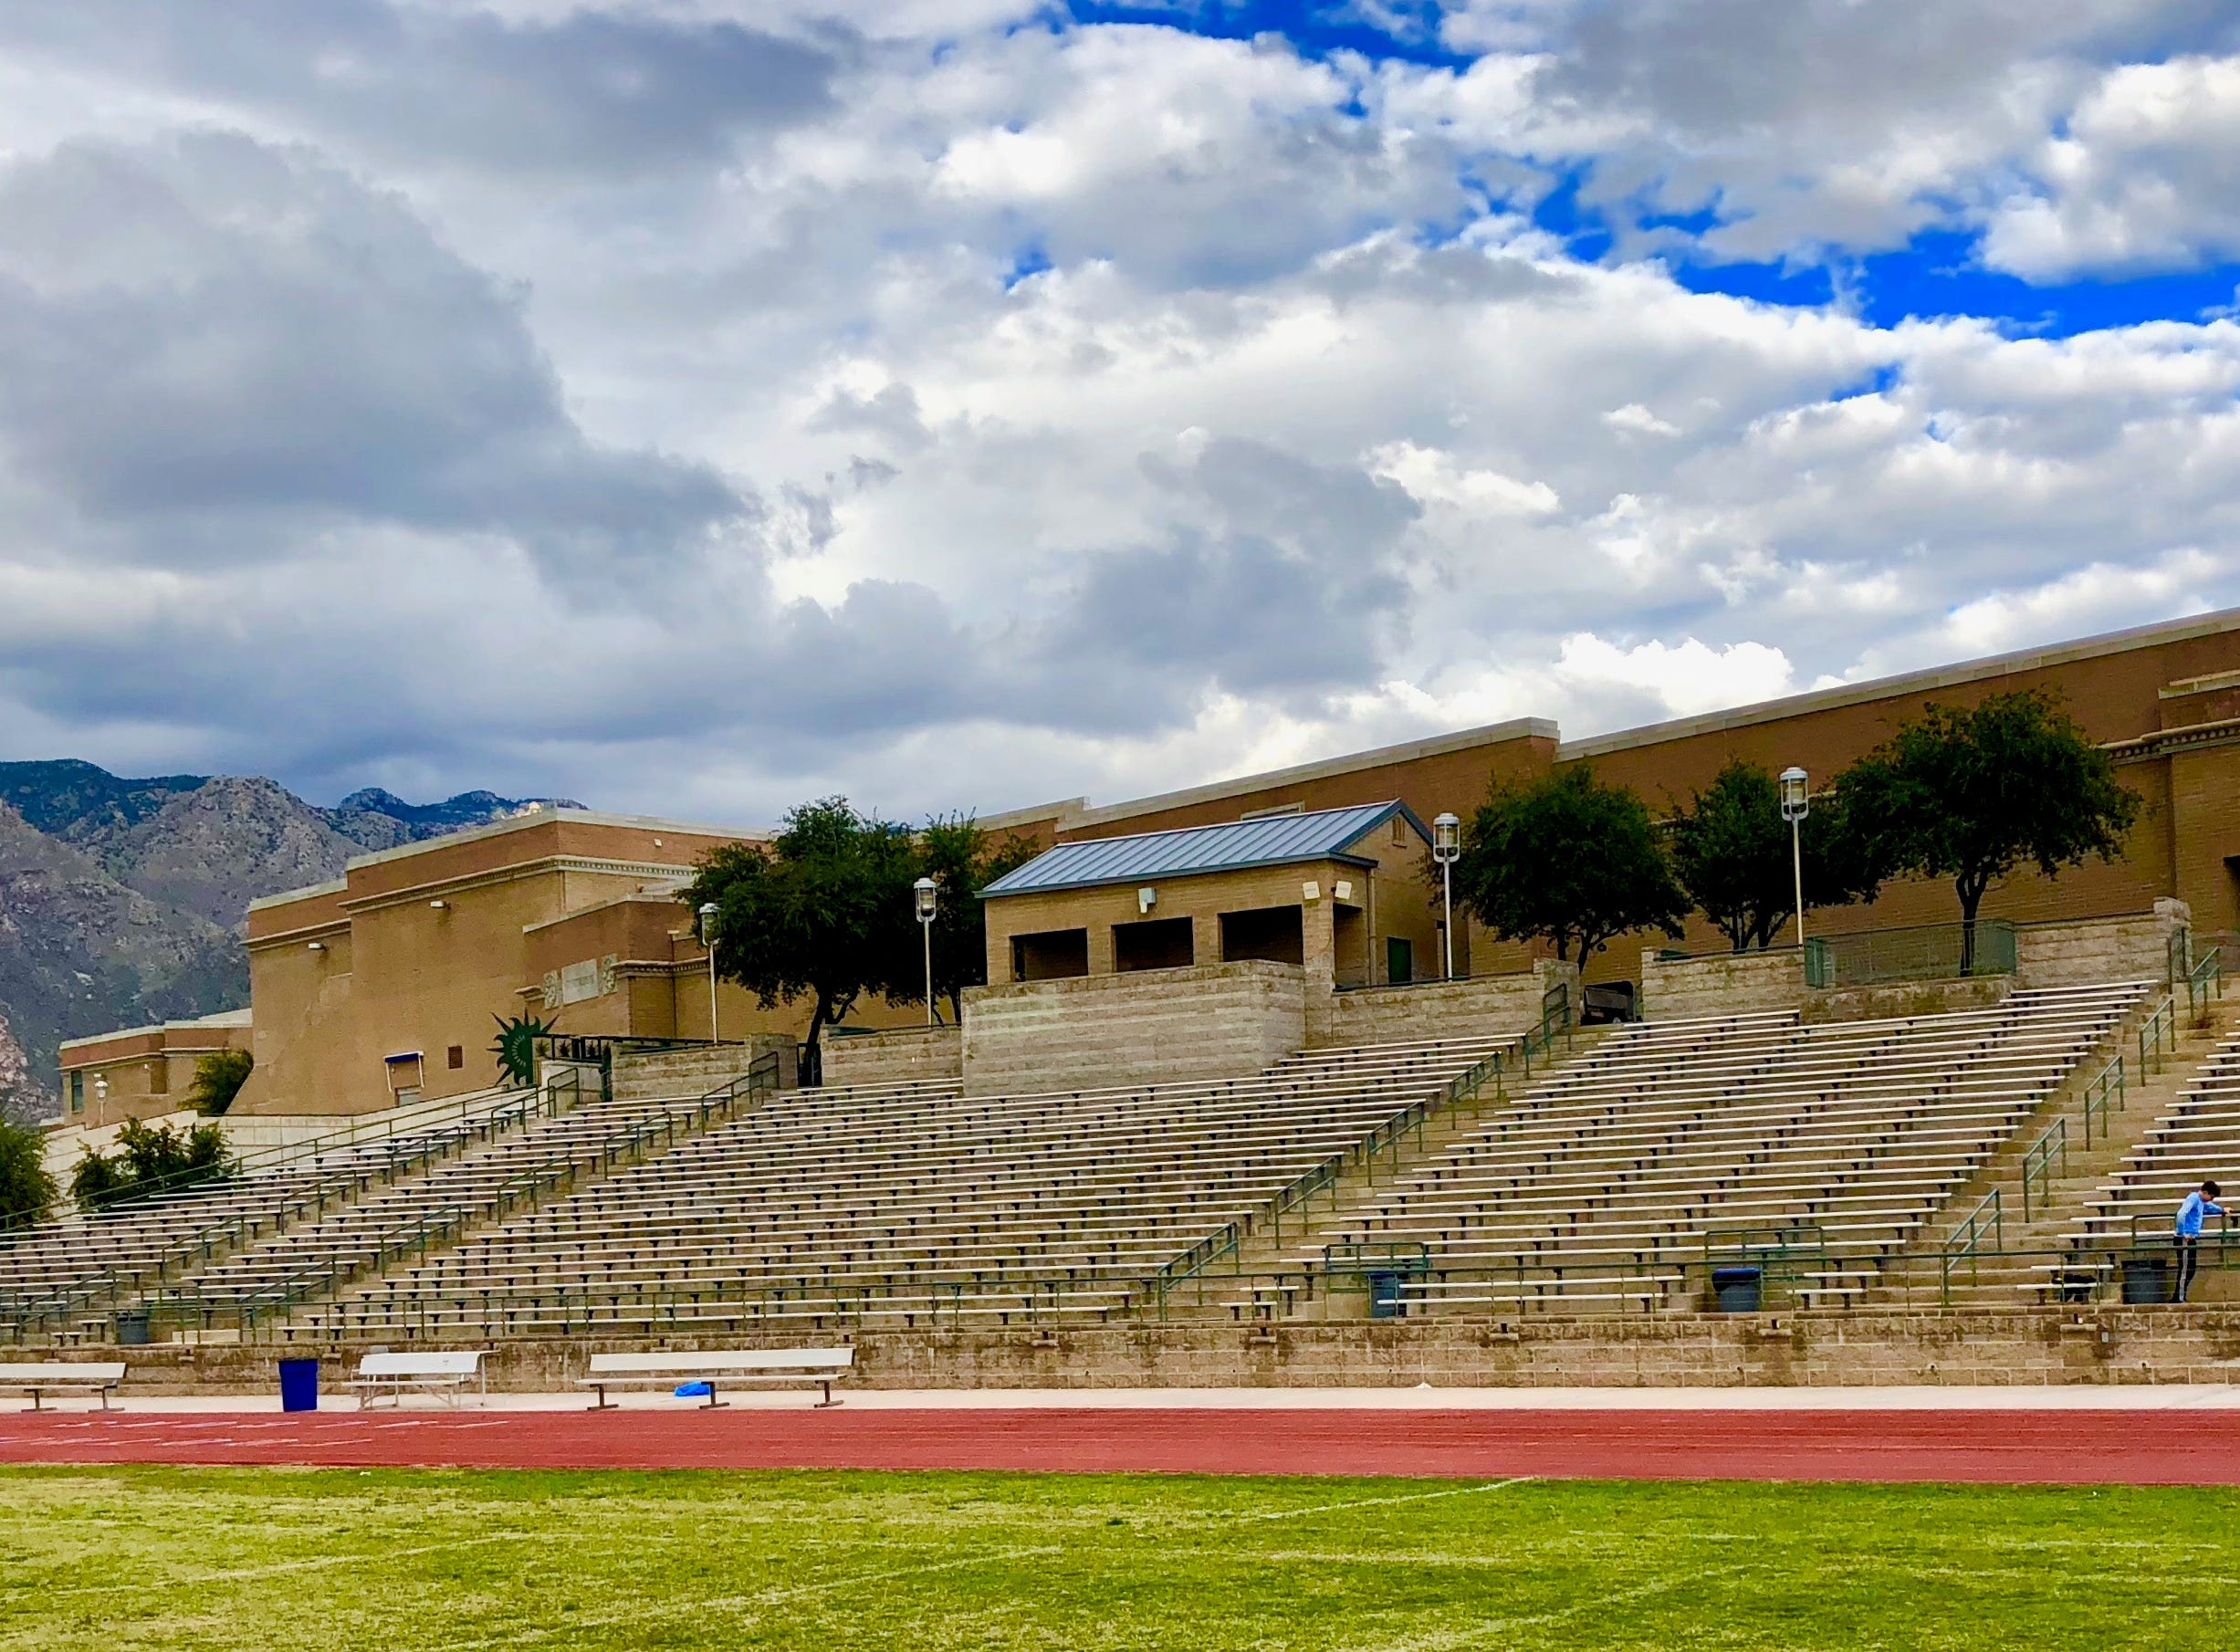 Tucson Catalina Foothills High School's football stadium.